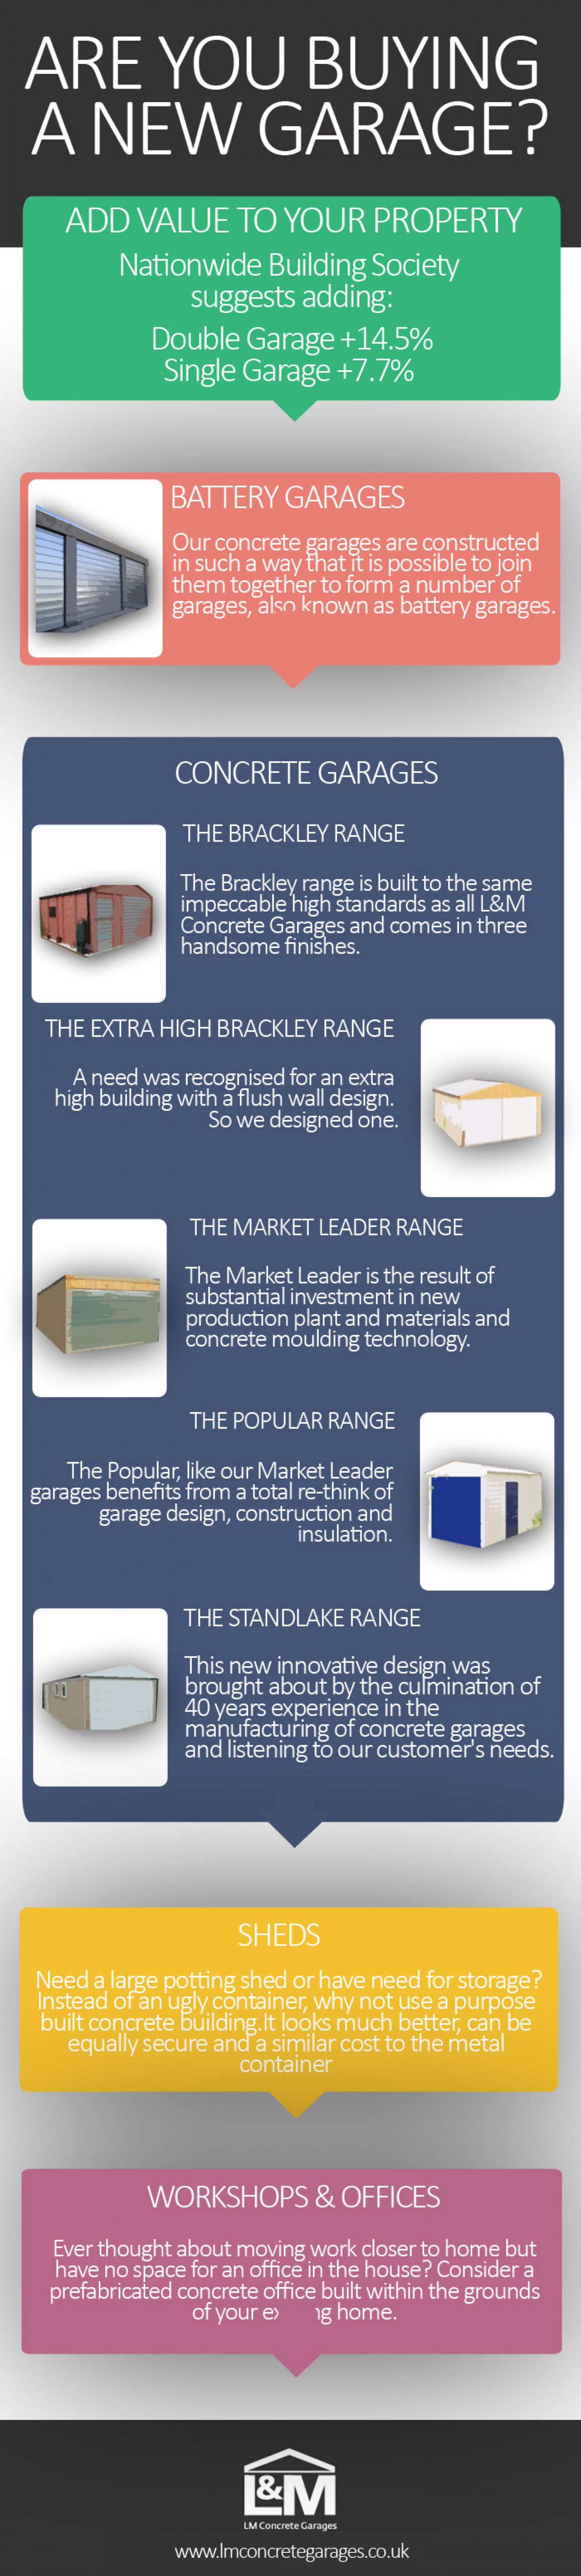 Buying a New Garage? Infographic